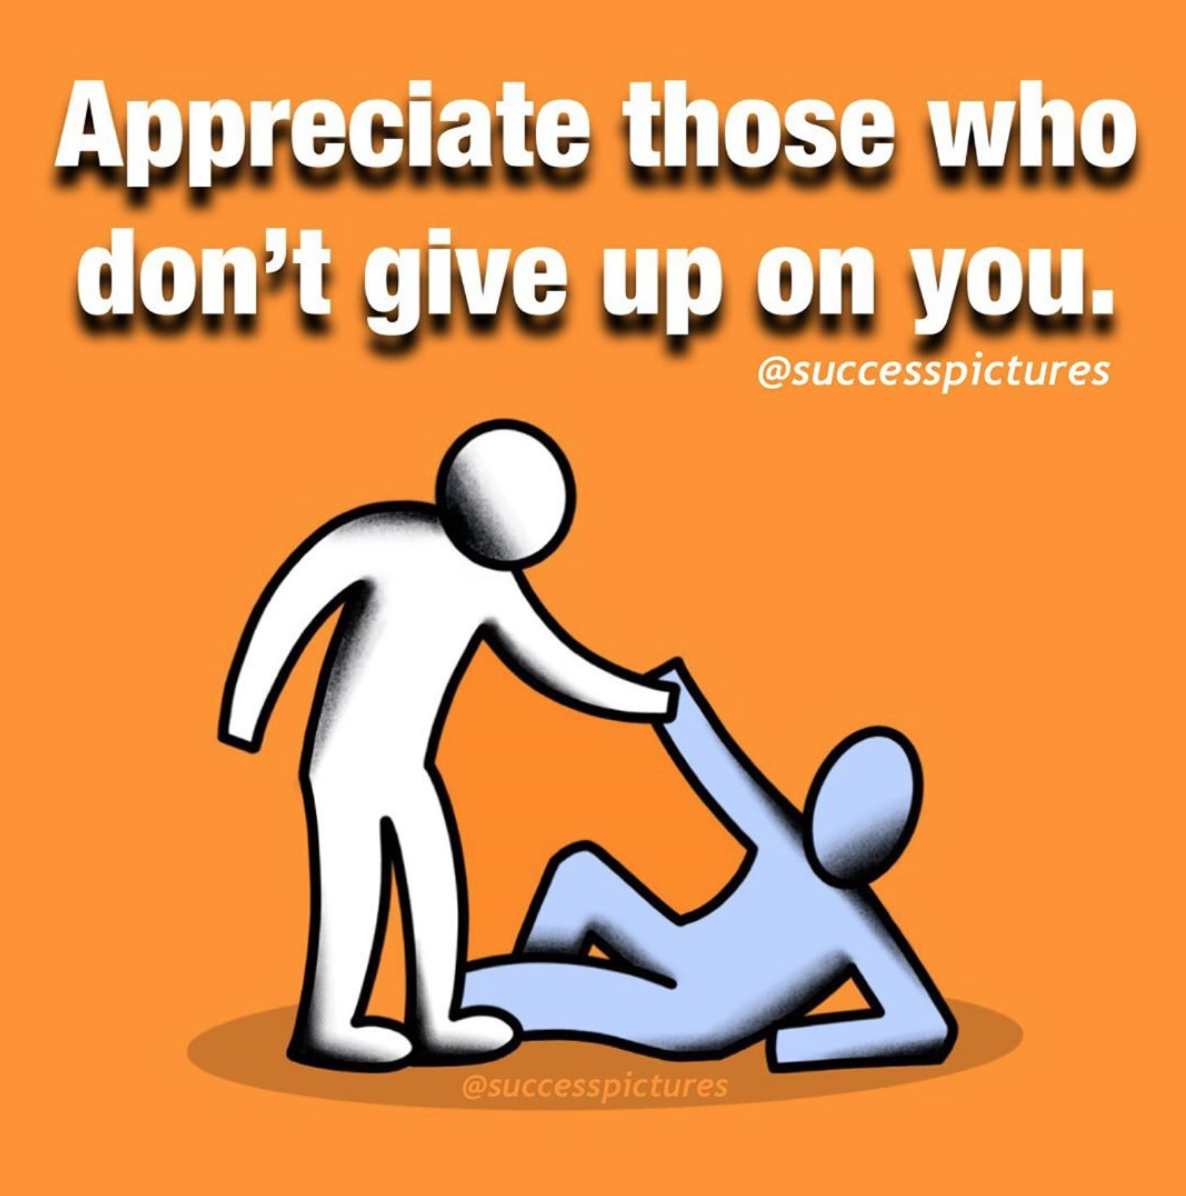 [Image] Never refuse the outstretched hand of someone who wants to help you in life